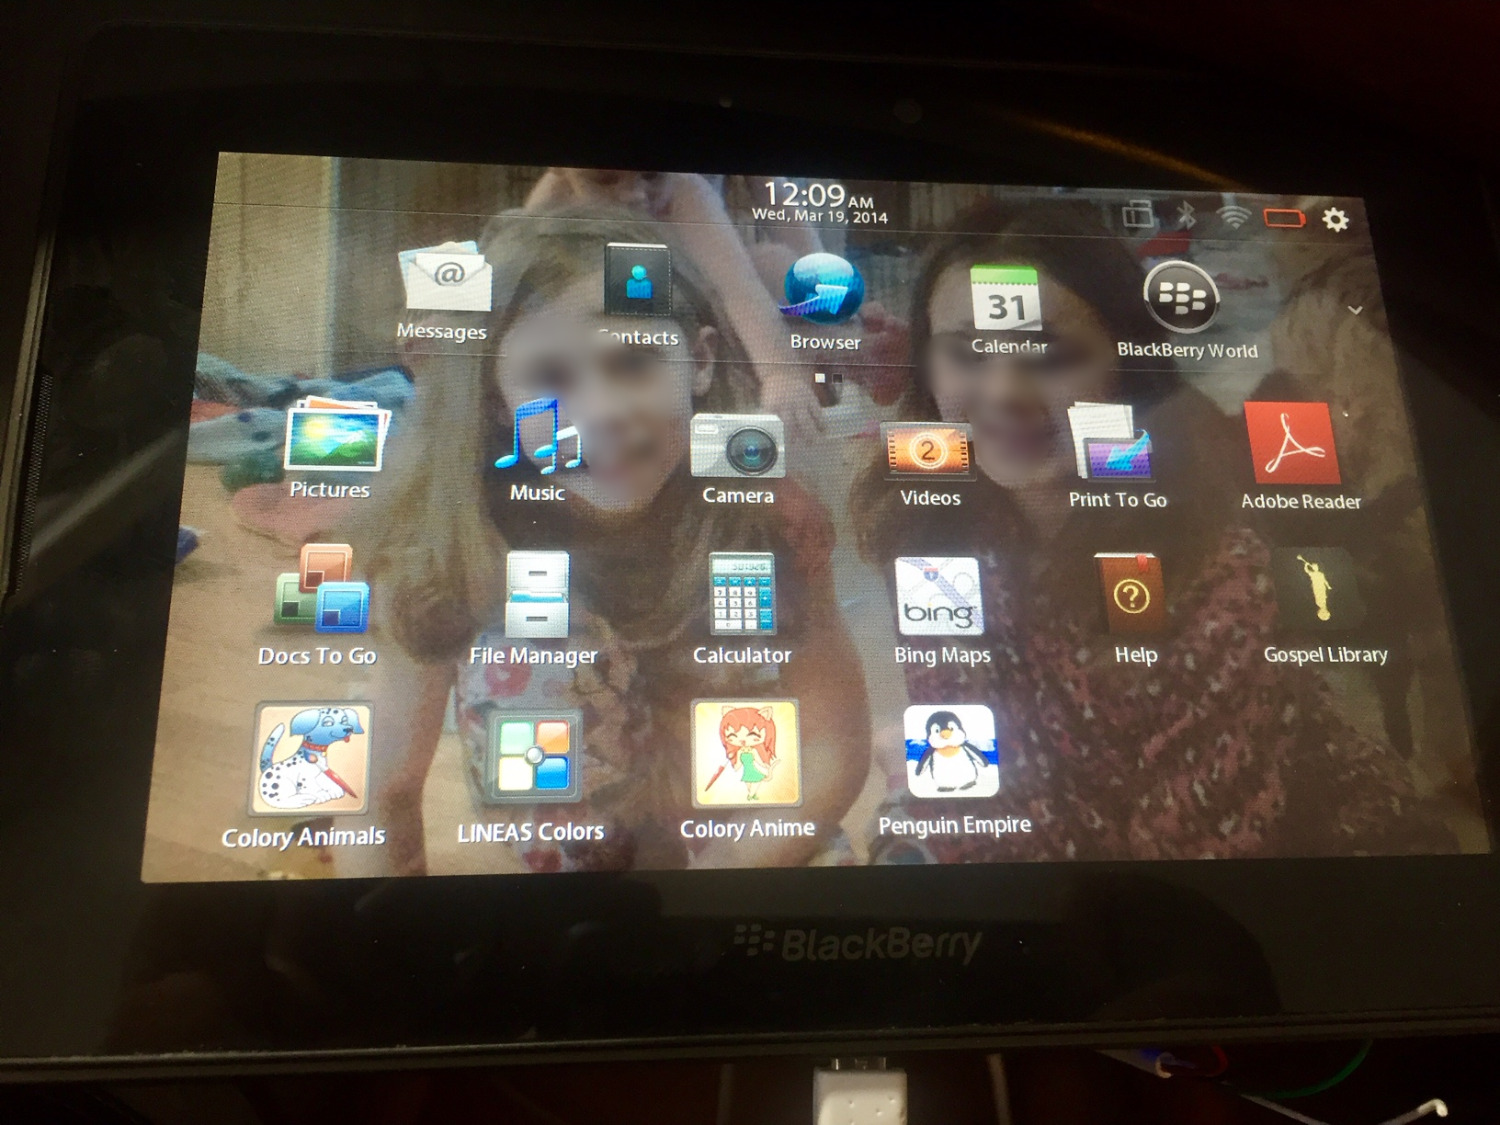 Blackberry Playbook not functioning